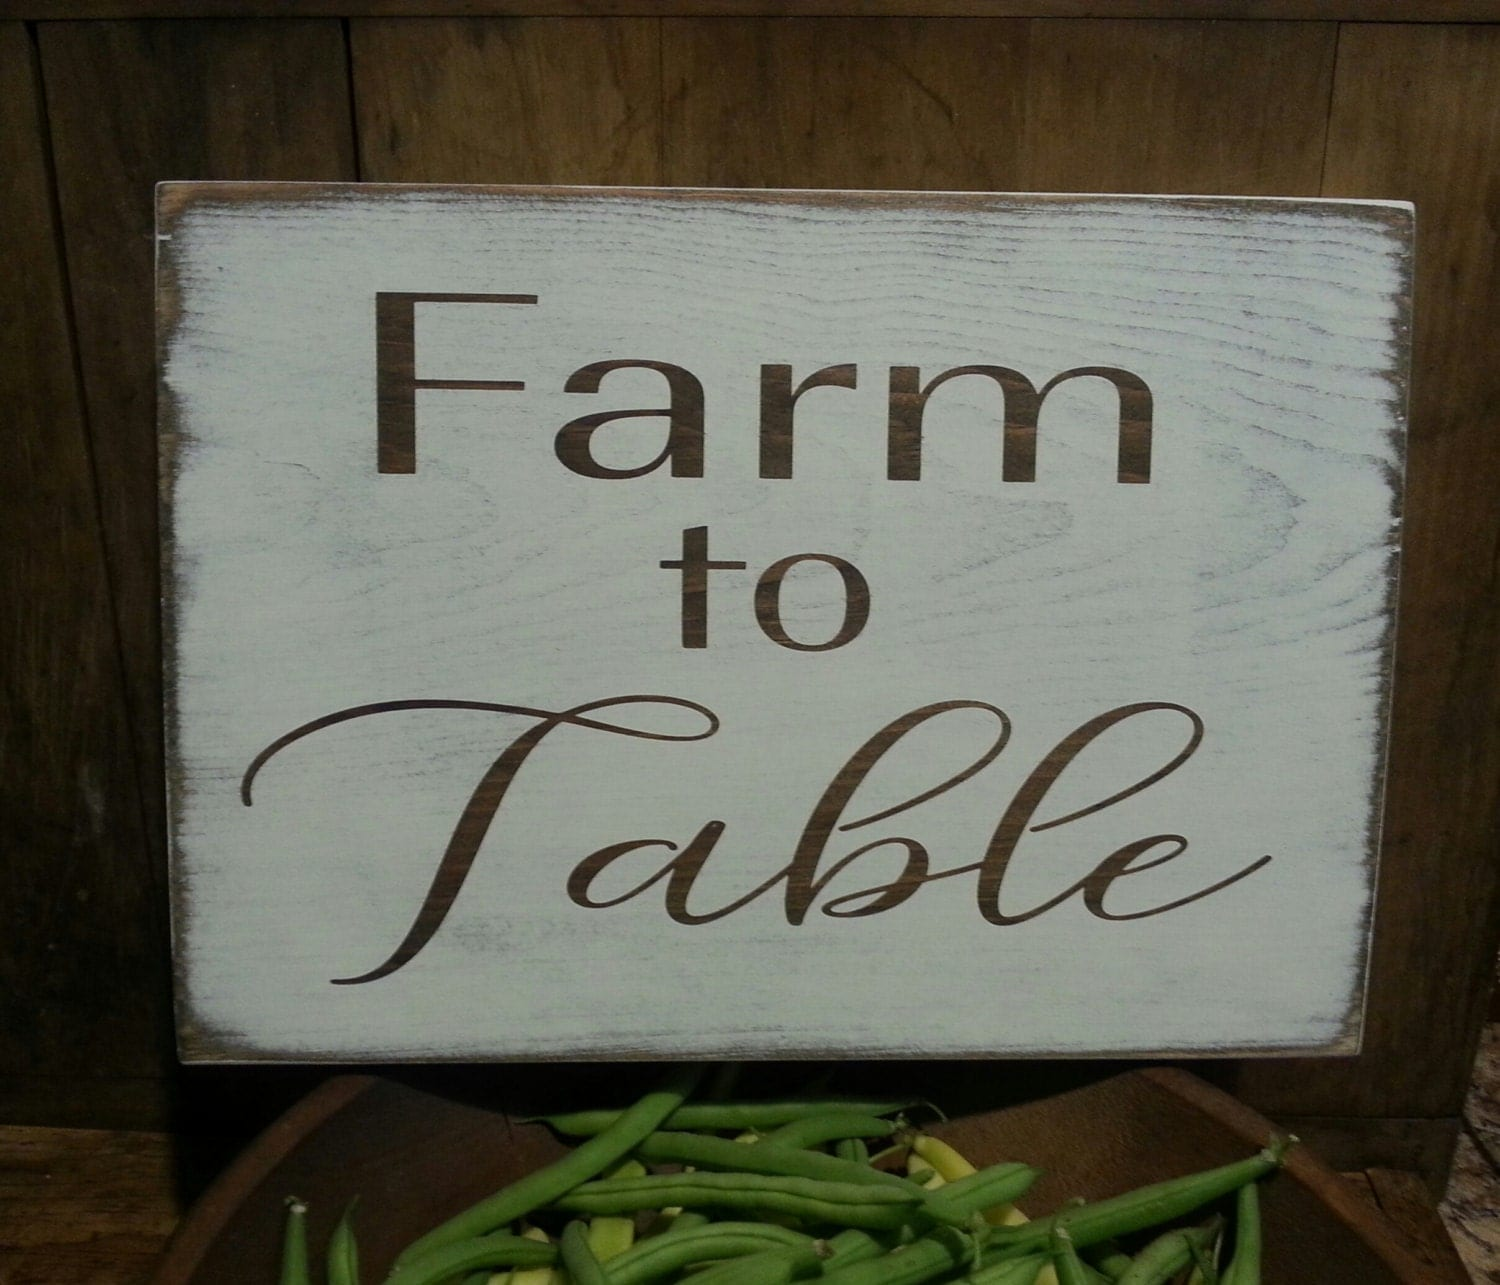 Farmhouse Kitchen Decor Farm To Table Wooden Sign Farmhouse